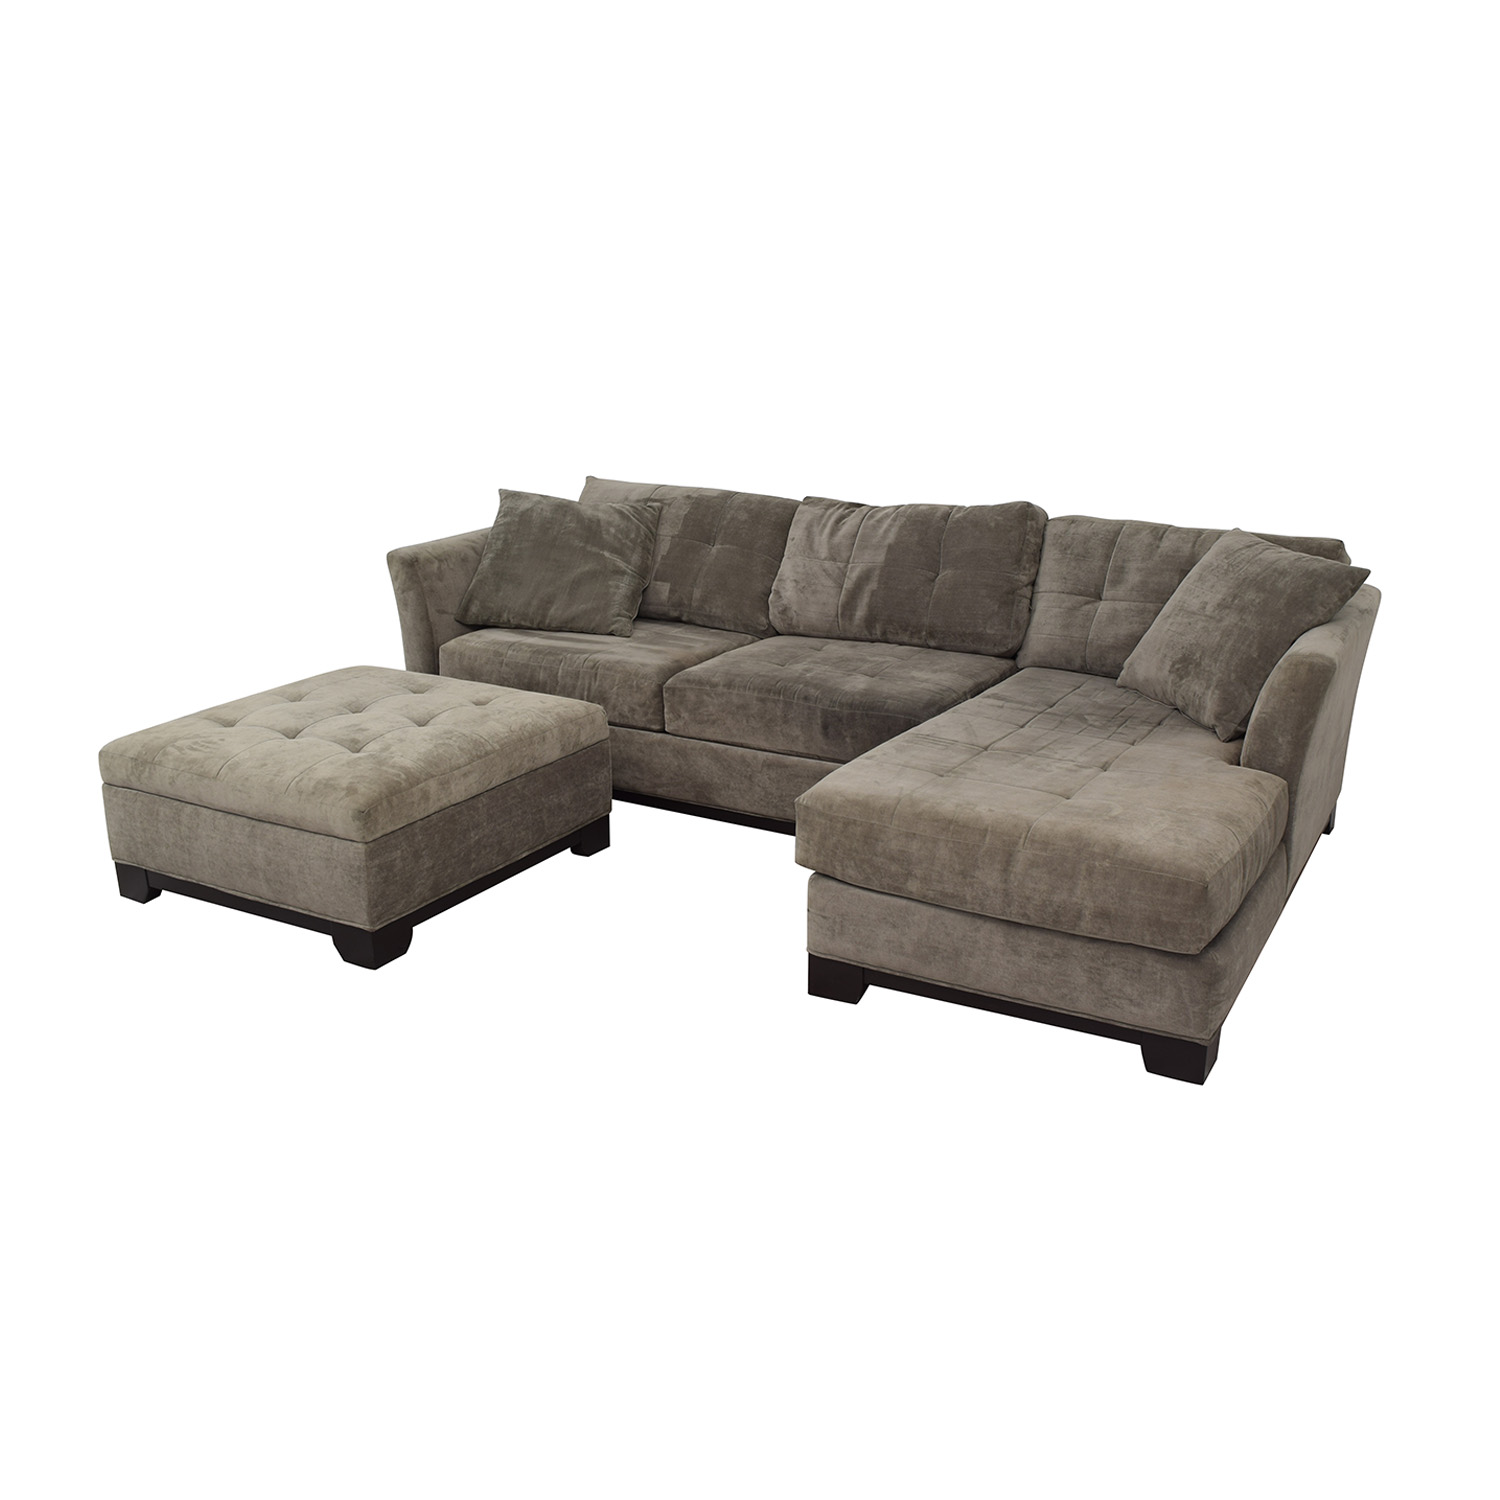 shop Macy's Furniture Chaise Couch with Ottoman Macy's